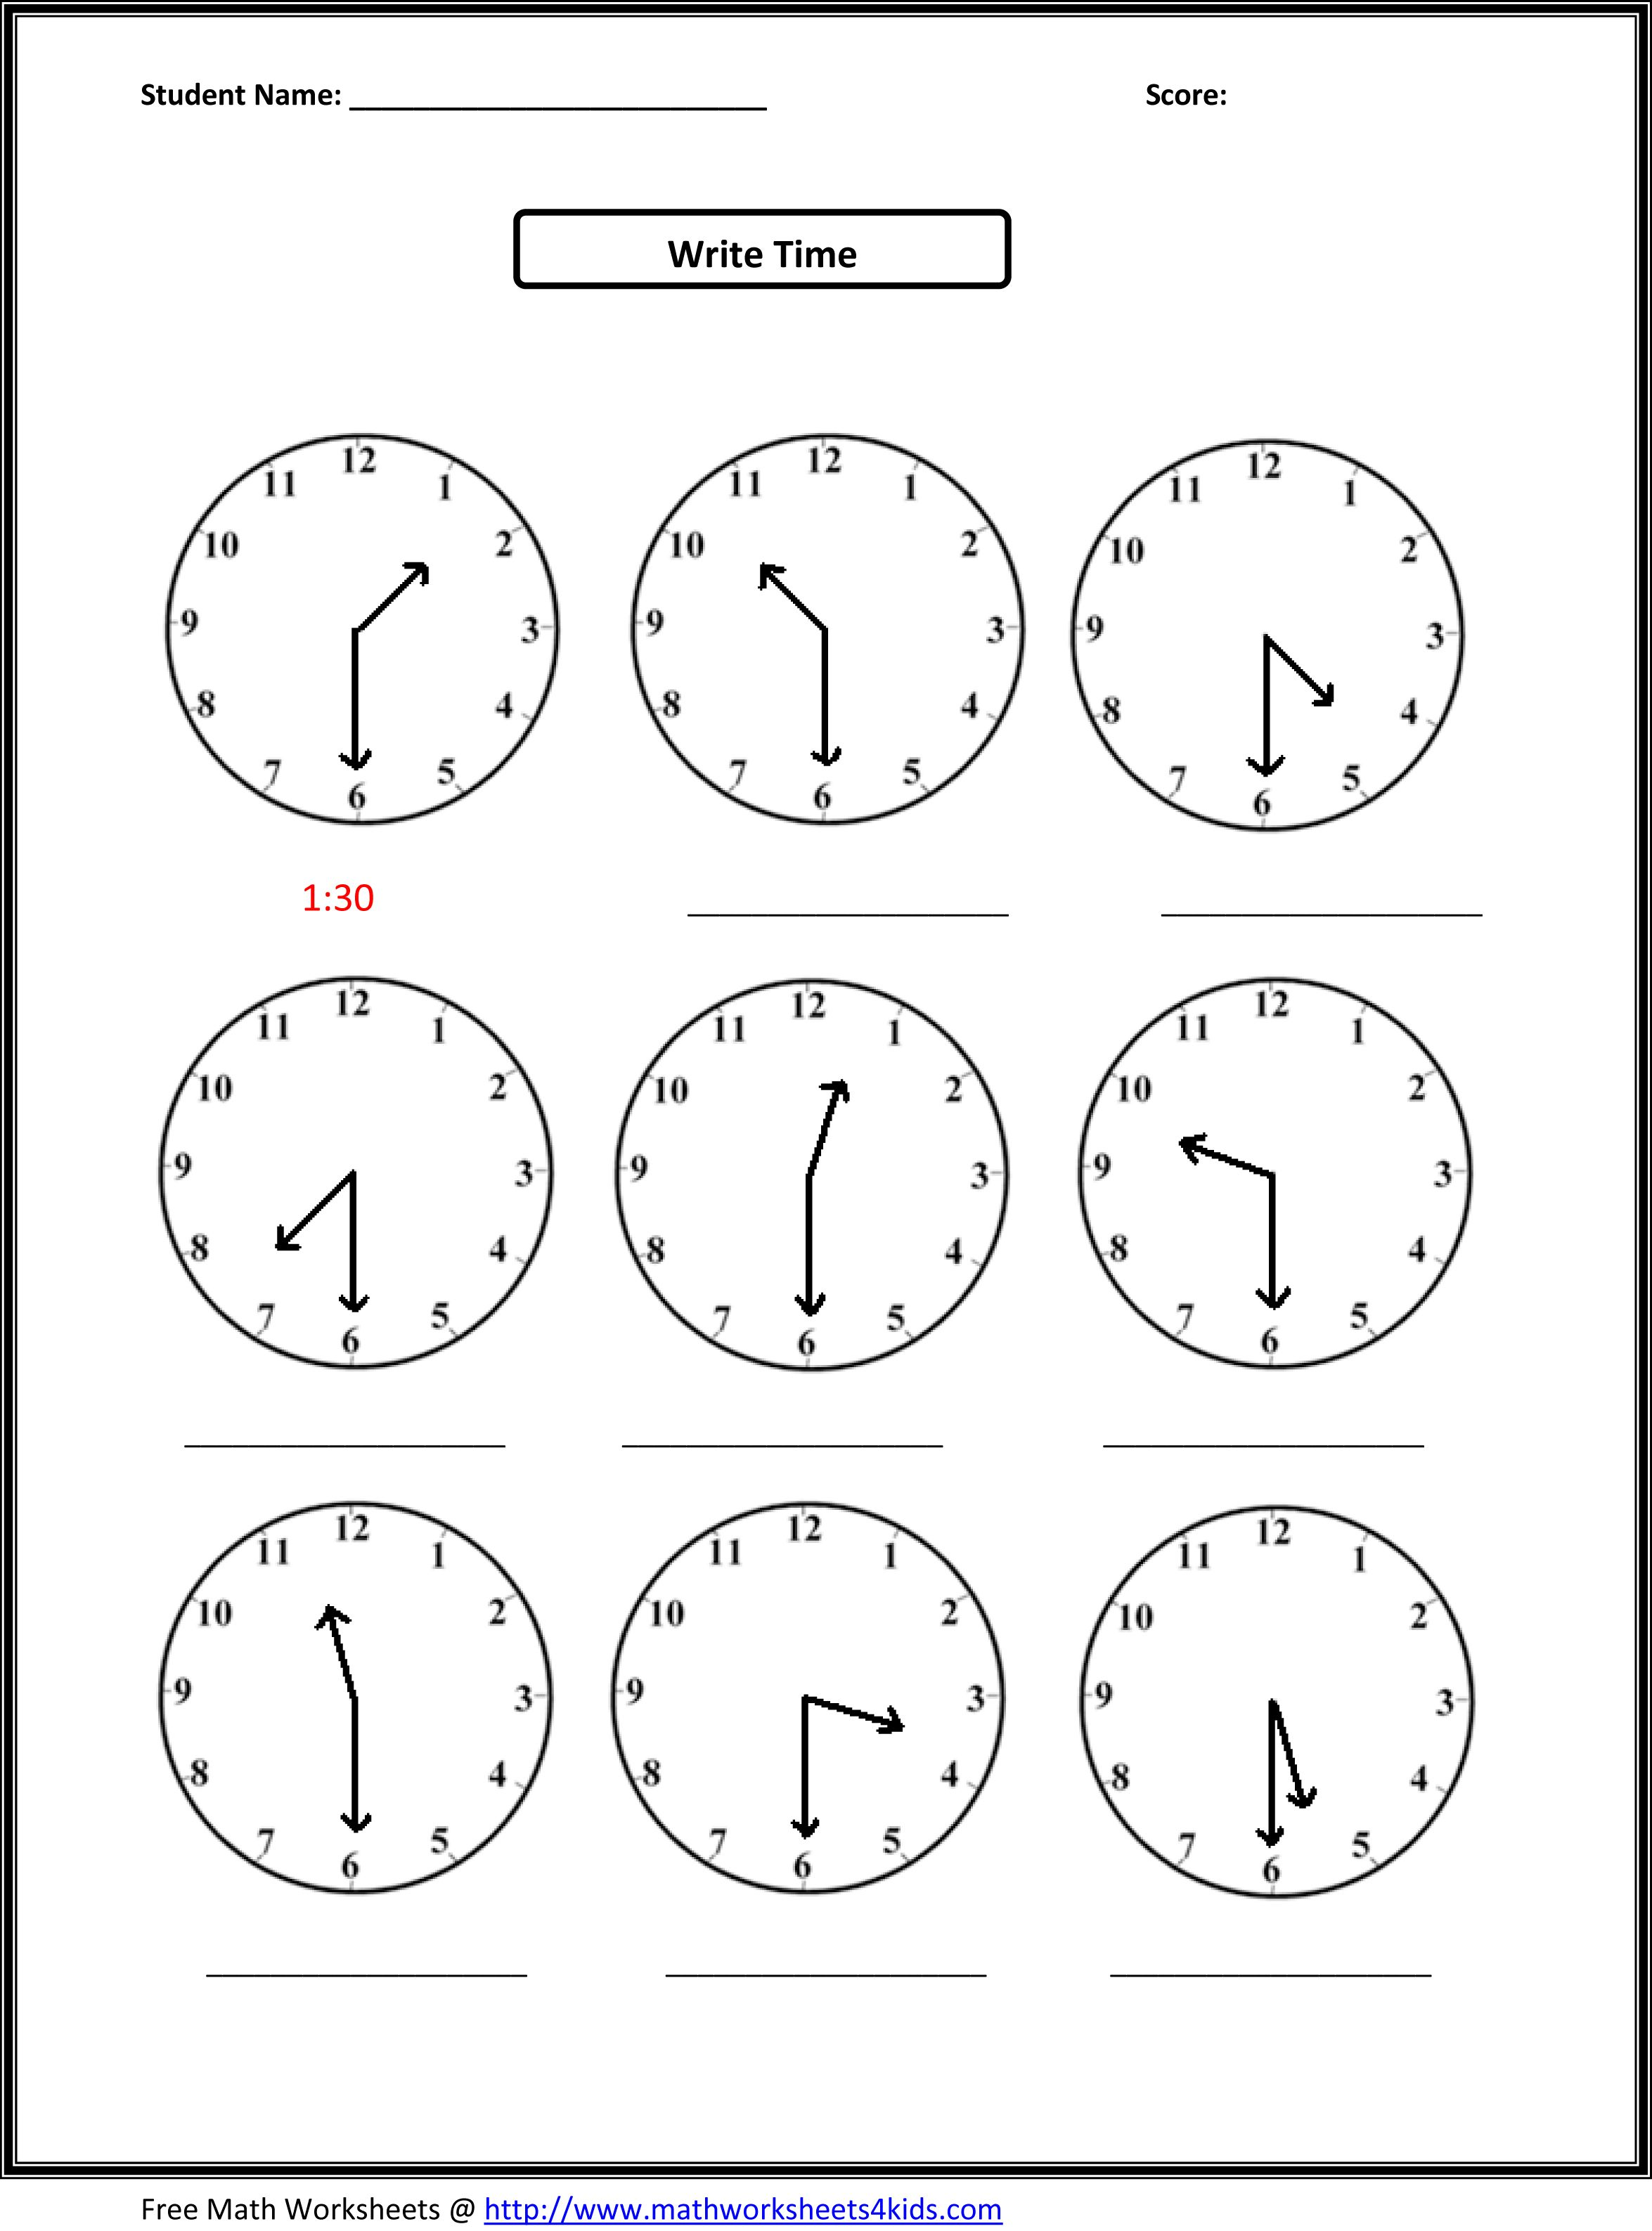 Proatmealus  Winsome Worksheet On Time For Grade   Reocurent With Lovely Free Printable Telling Time Worksheets Nd Grade  Reocurent With Delectable Simple And Complex Sentences Worksheets Also Scholastic Worksheets Free In Addition Measurement And Geometry Worksheets And Decimals Worksheet Th Grade As Well As Teaching Latitude And Longitude Worksheets Additionally Piecewise Functions Worksheet And Answers From Reocurentcom With Proatmealus  Lovely Worksheet On Time For Grade   Reocurent With Delectable Free Printable Telling Time Worksheets Nd Grade  Reocurent And Winsome Simple And Complex Sentences Worksheets Also Scholastic Worksheets Free In Addition Measurement And Geometry Worksheets From Reocurentcom